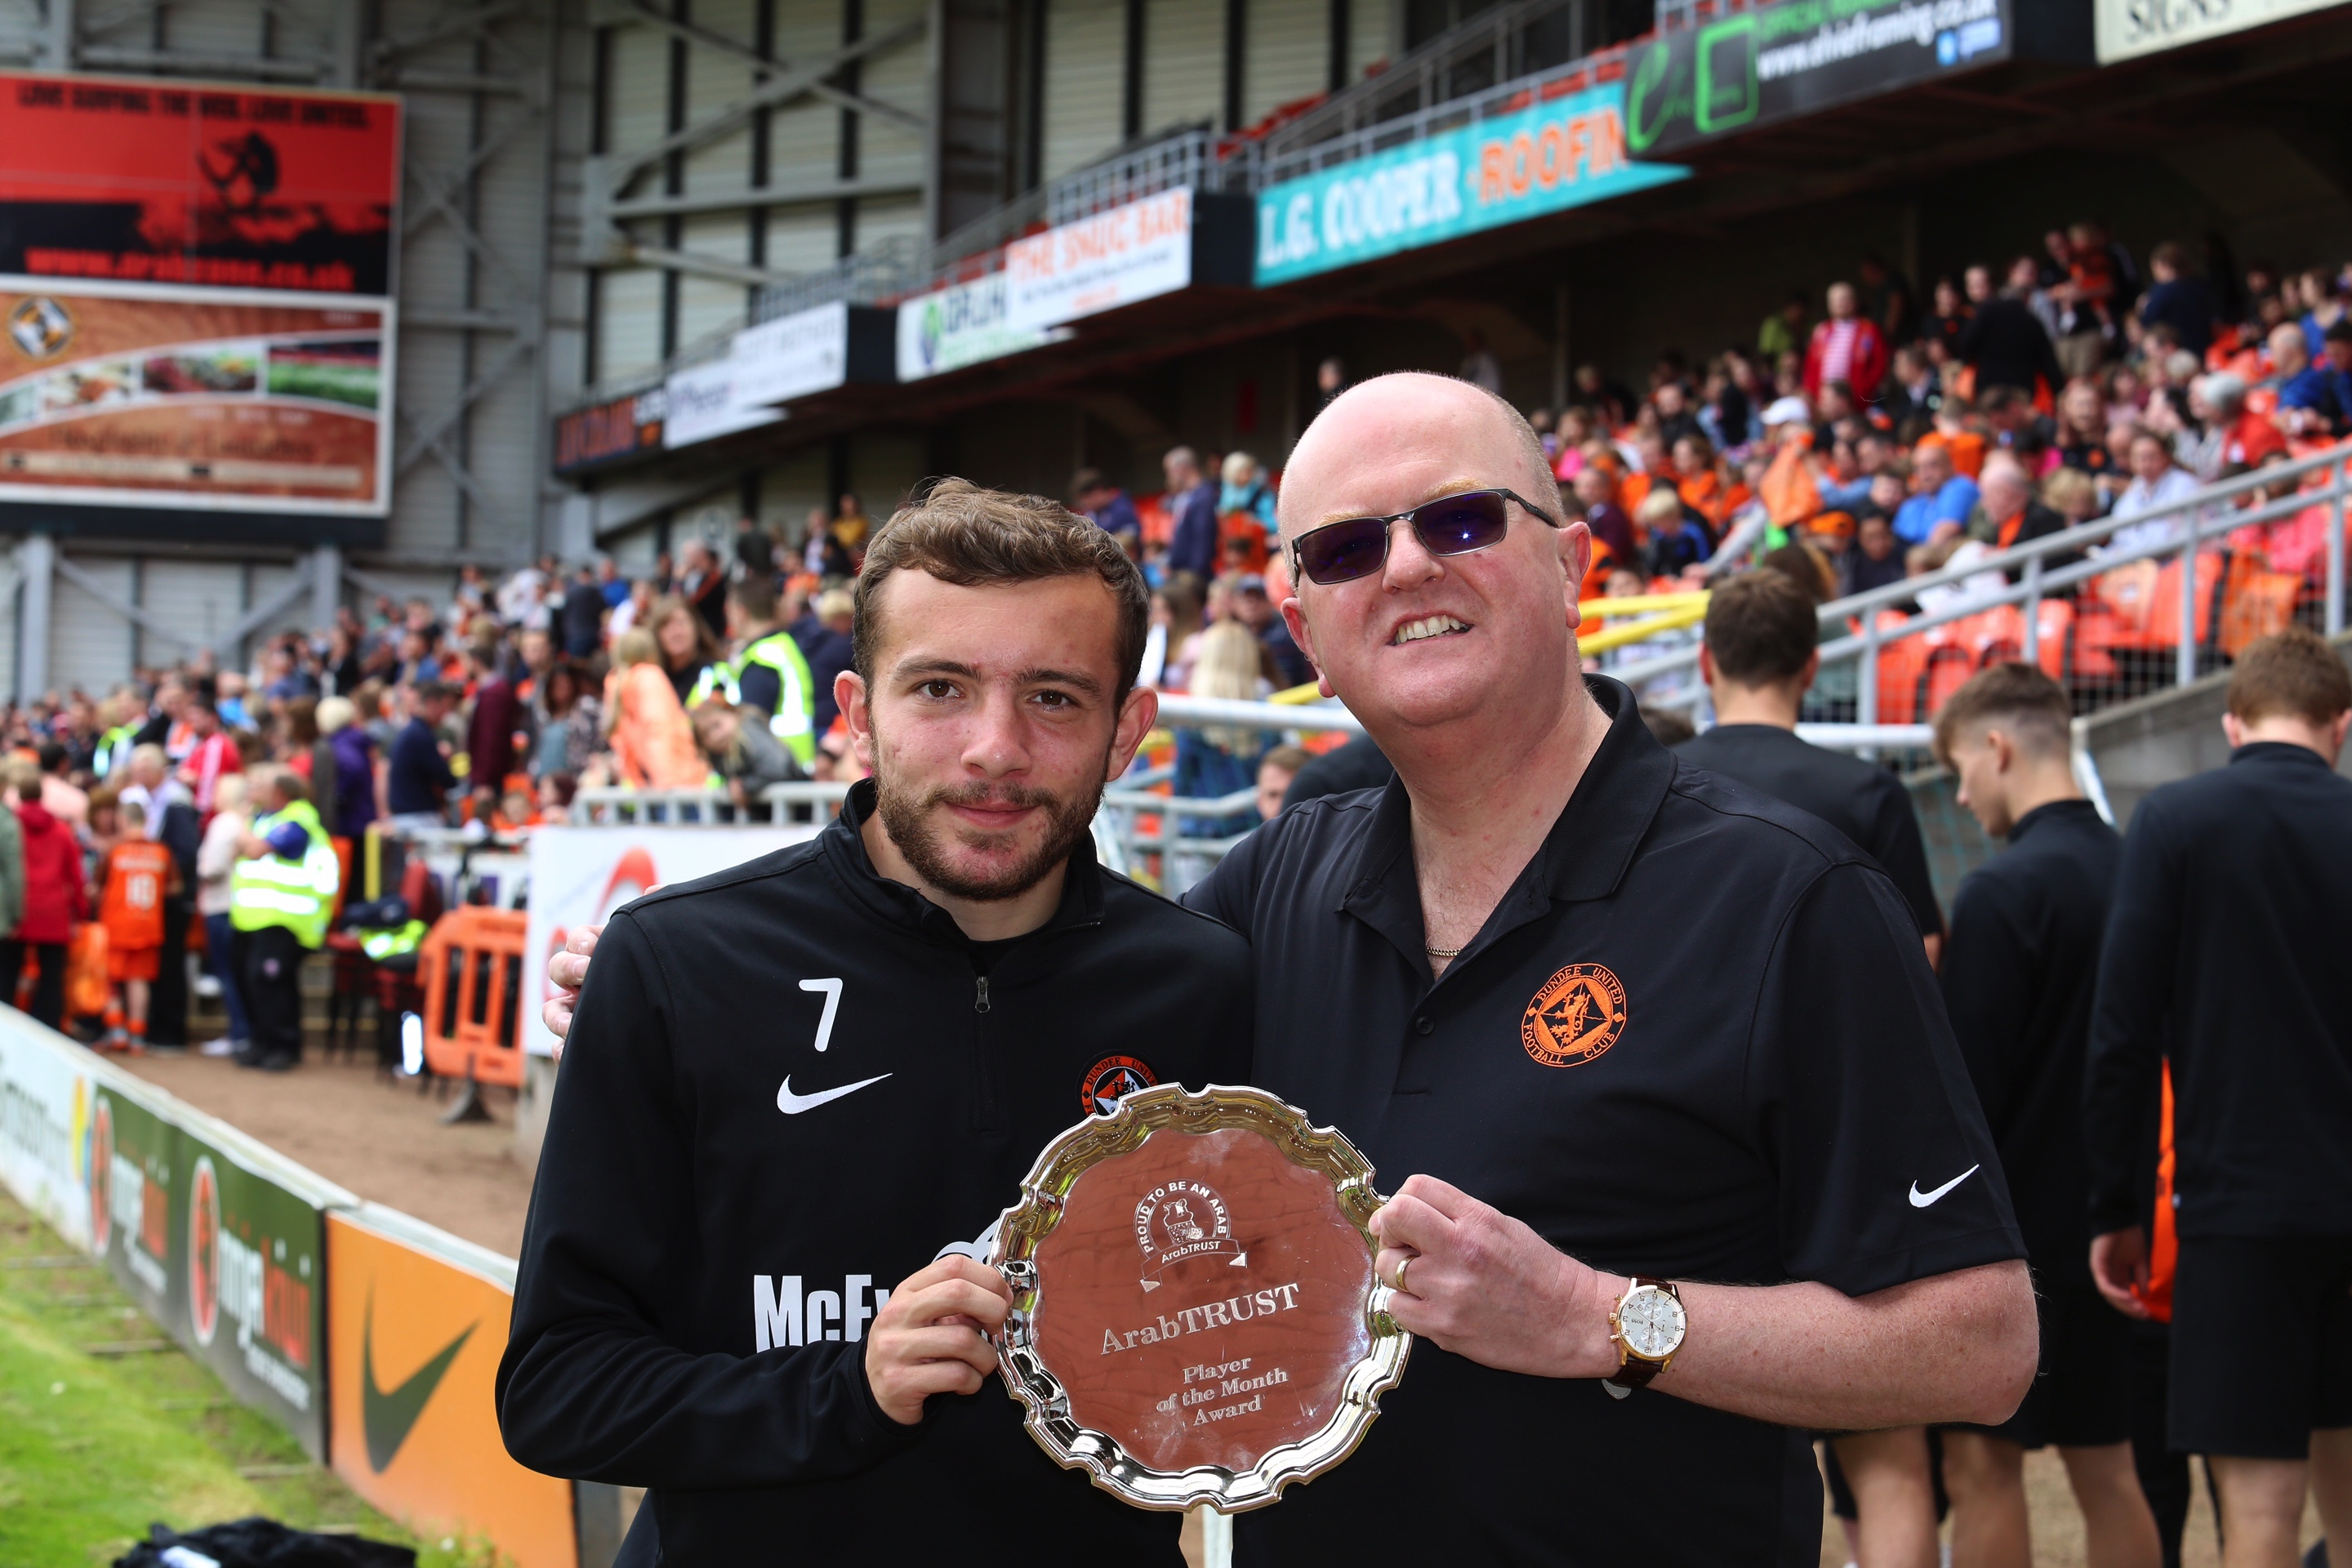 Paul McMullan - ArabTRUST July 2017 Player of the Month